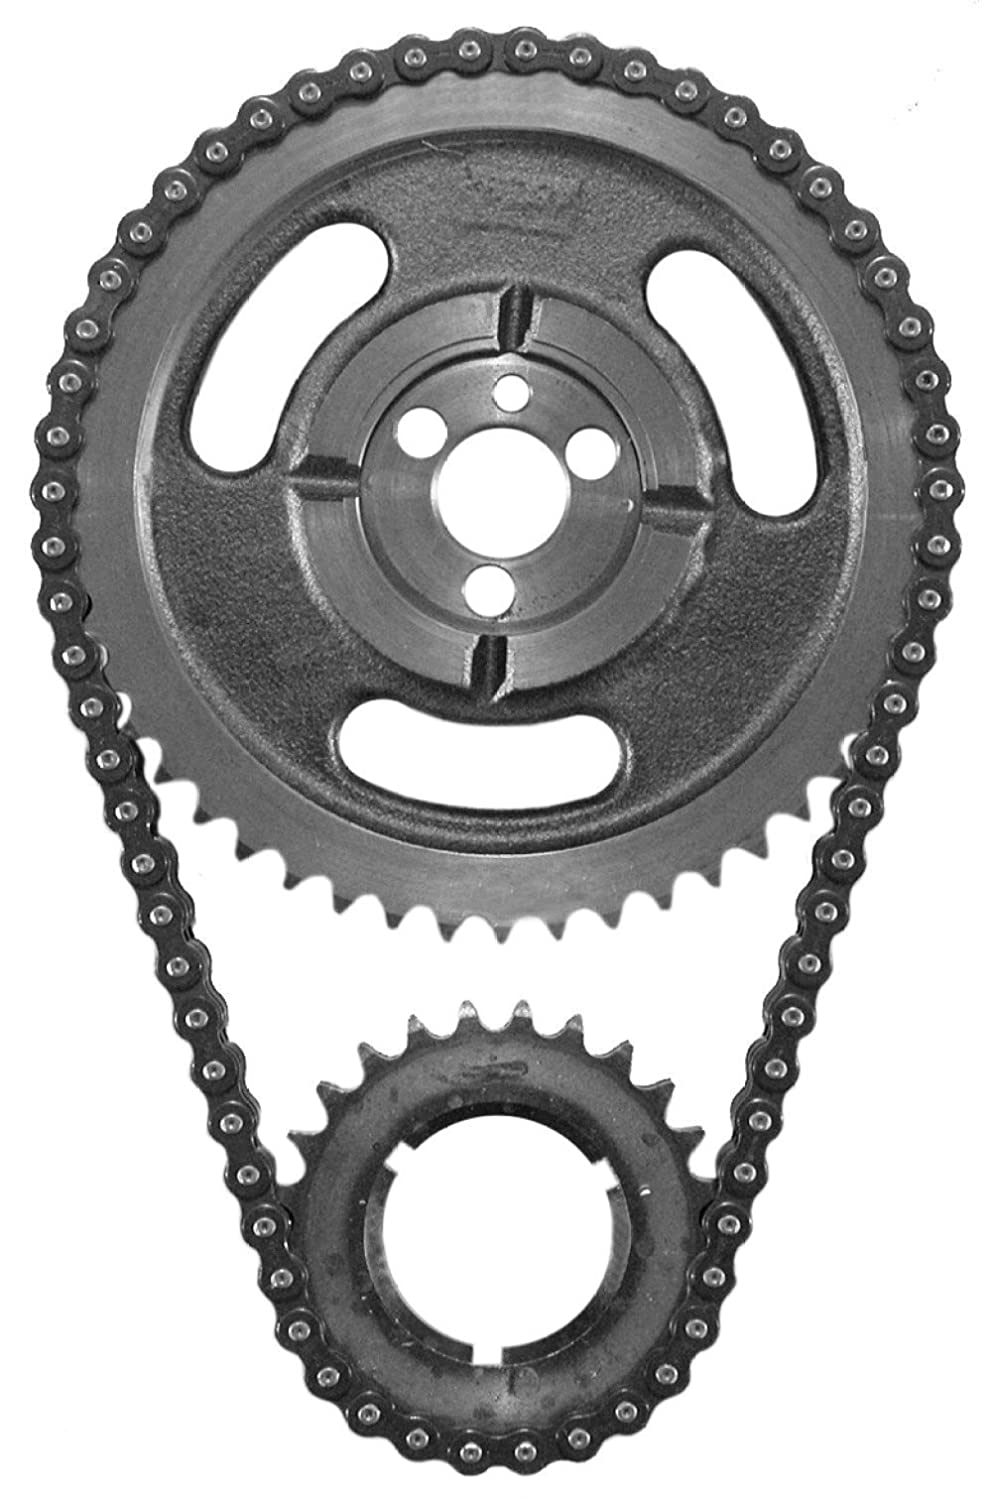 SA Gear 73036-3 BBC Chevy HD Double Row Timing Chain 396 402 427 454 3 Keyway